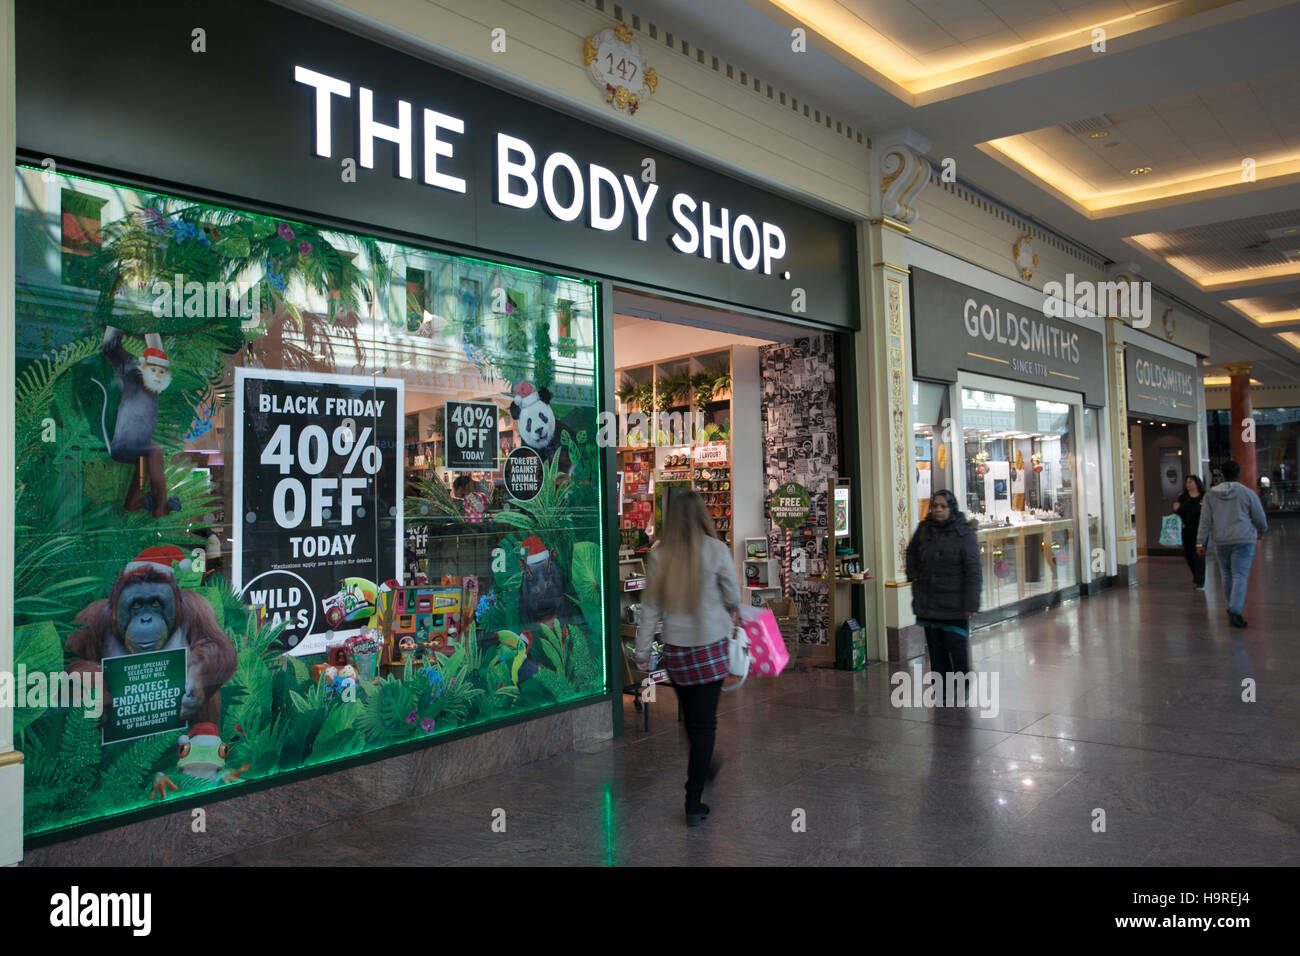 Black Friday Wochenende The Body Shop Intu Trafford Centre Manchester Uk 25 November